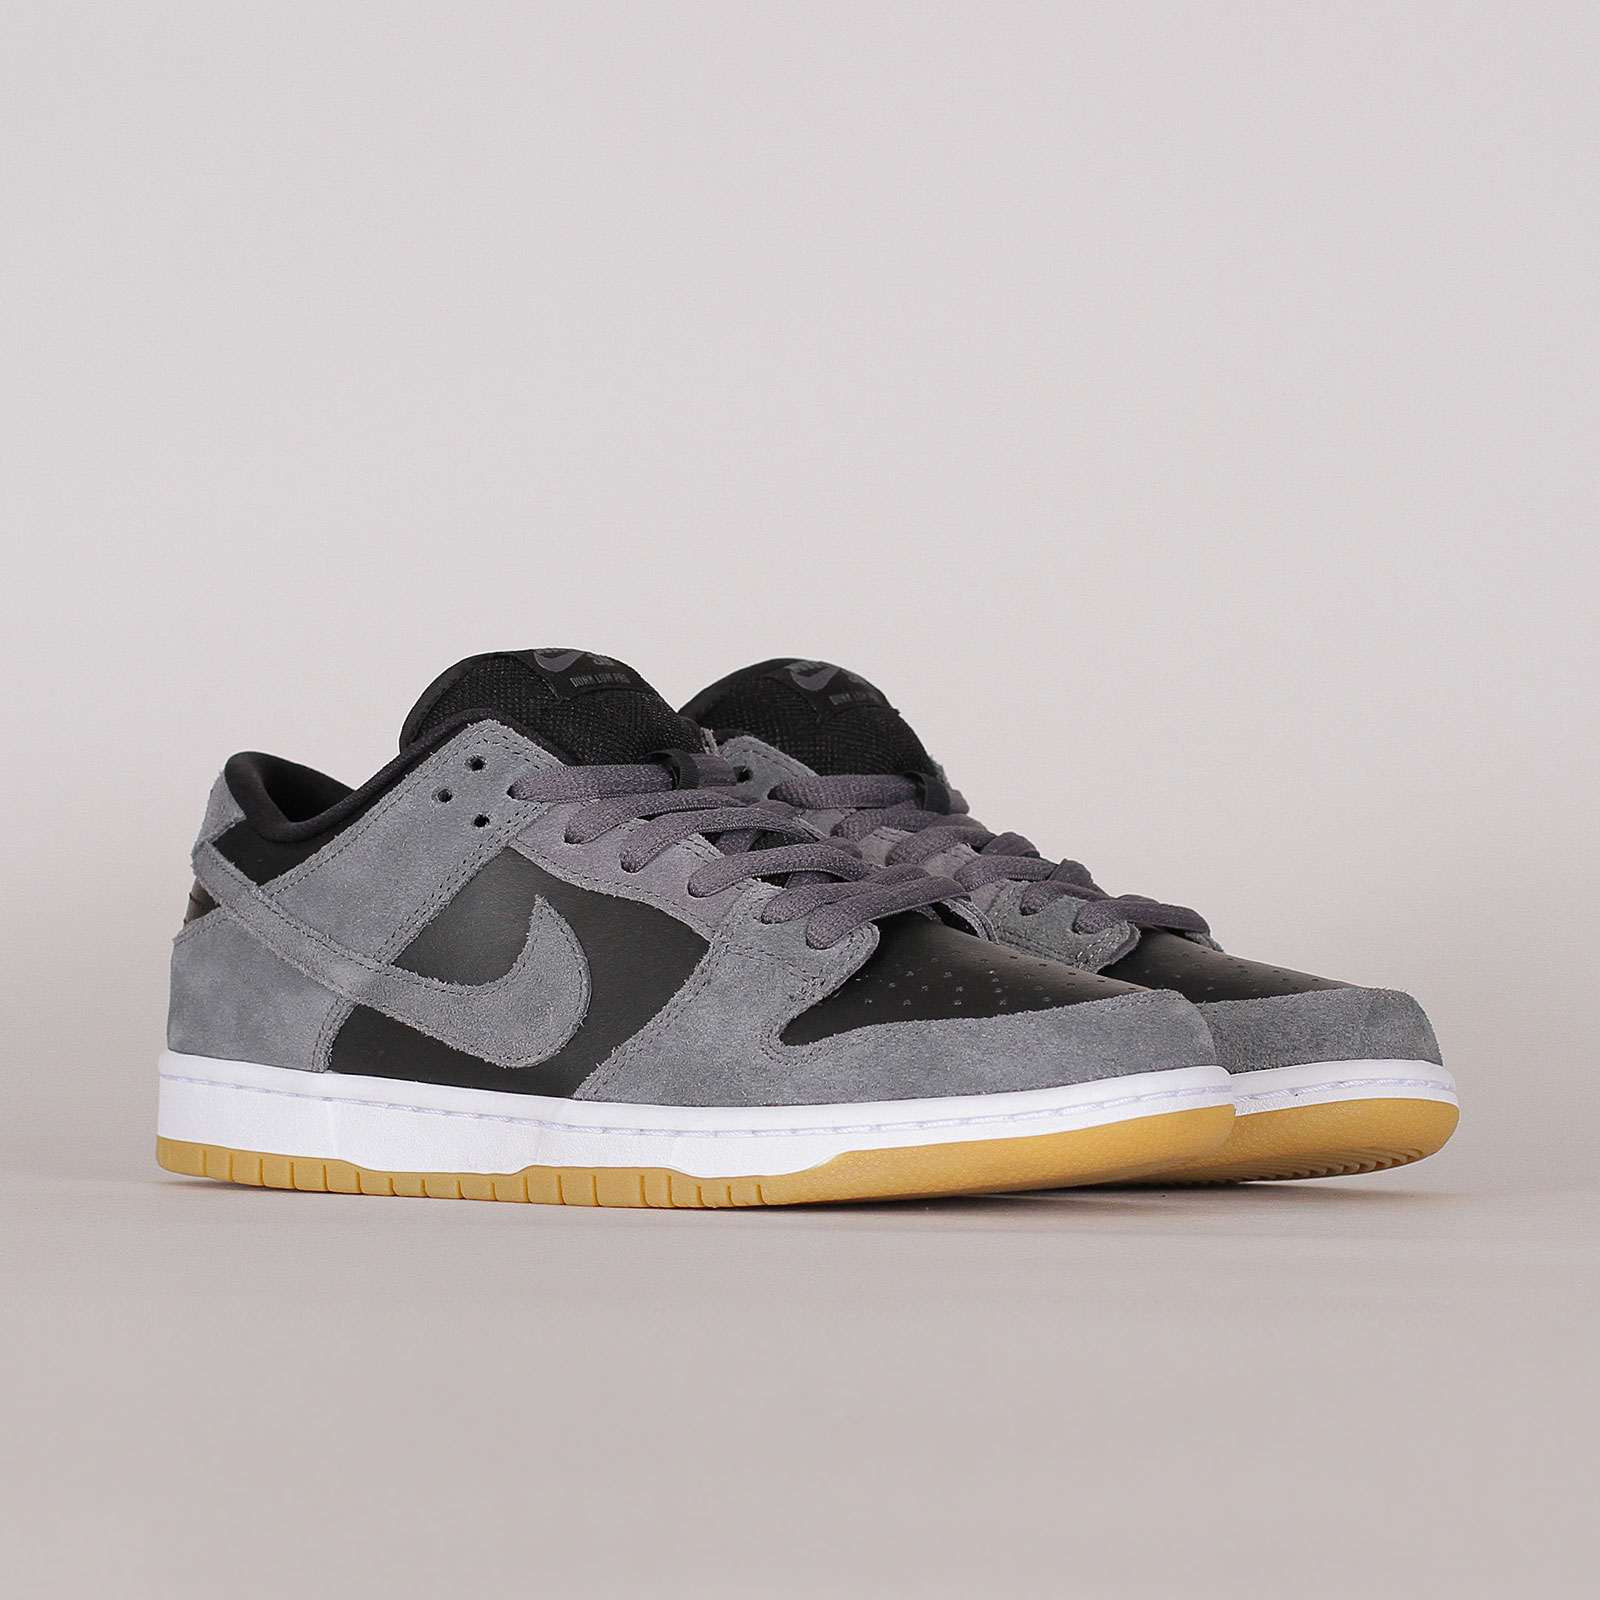 hecho Metro Restricción  Shelta - Nike SB Dunk Low TRD QS East West Pack (AR0778-001)